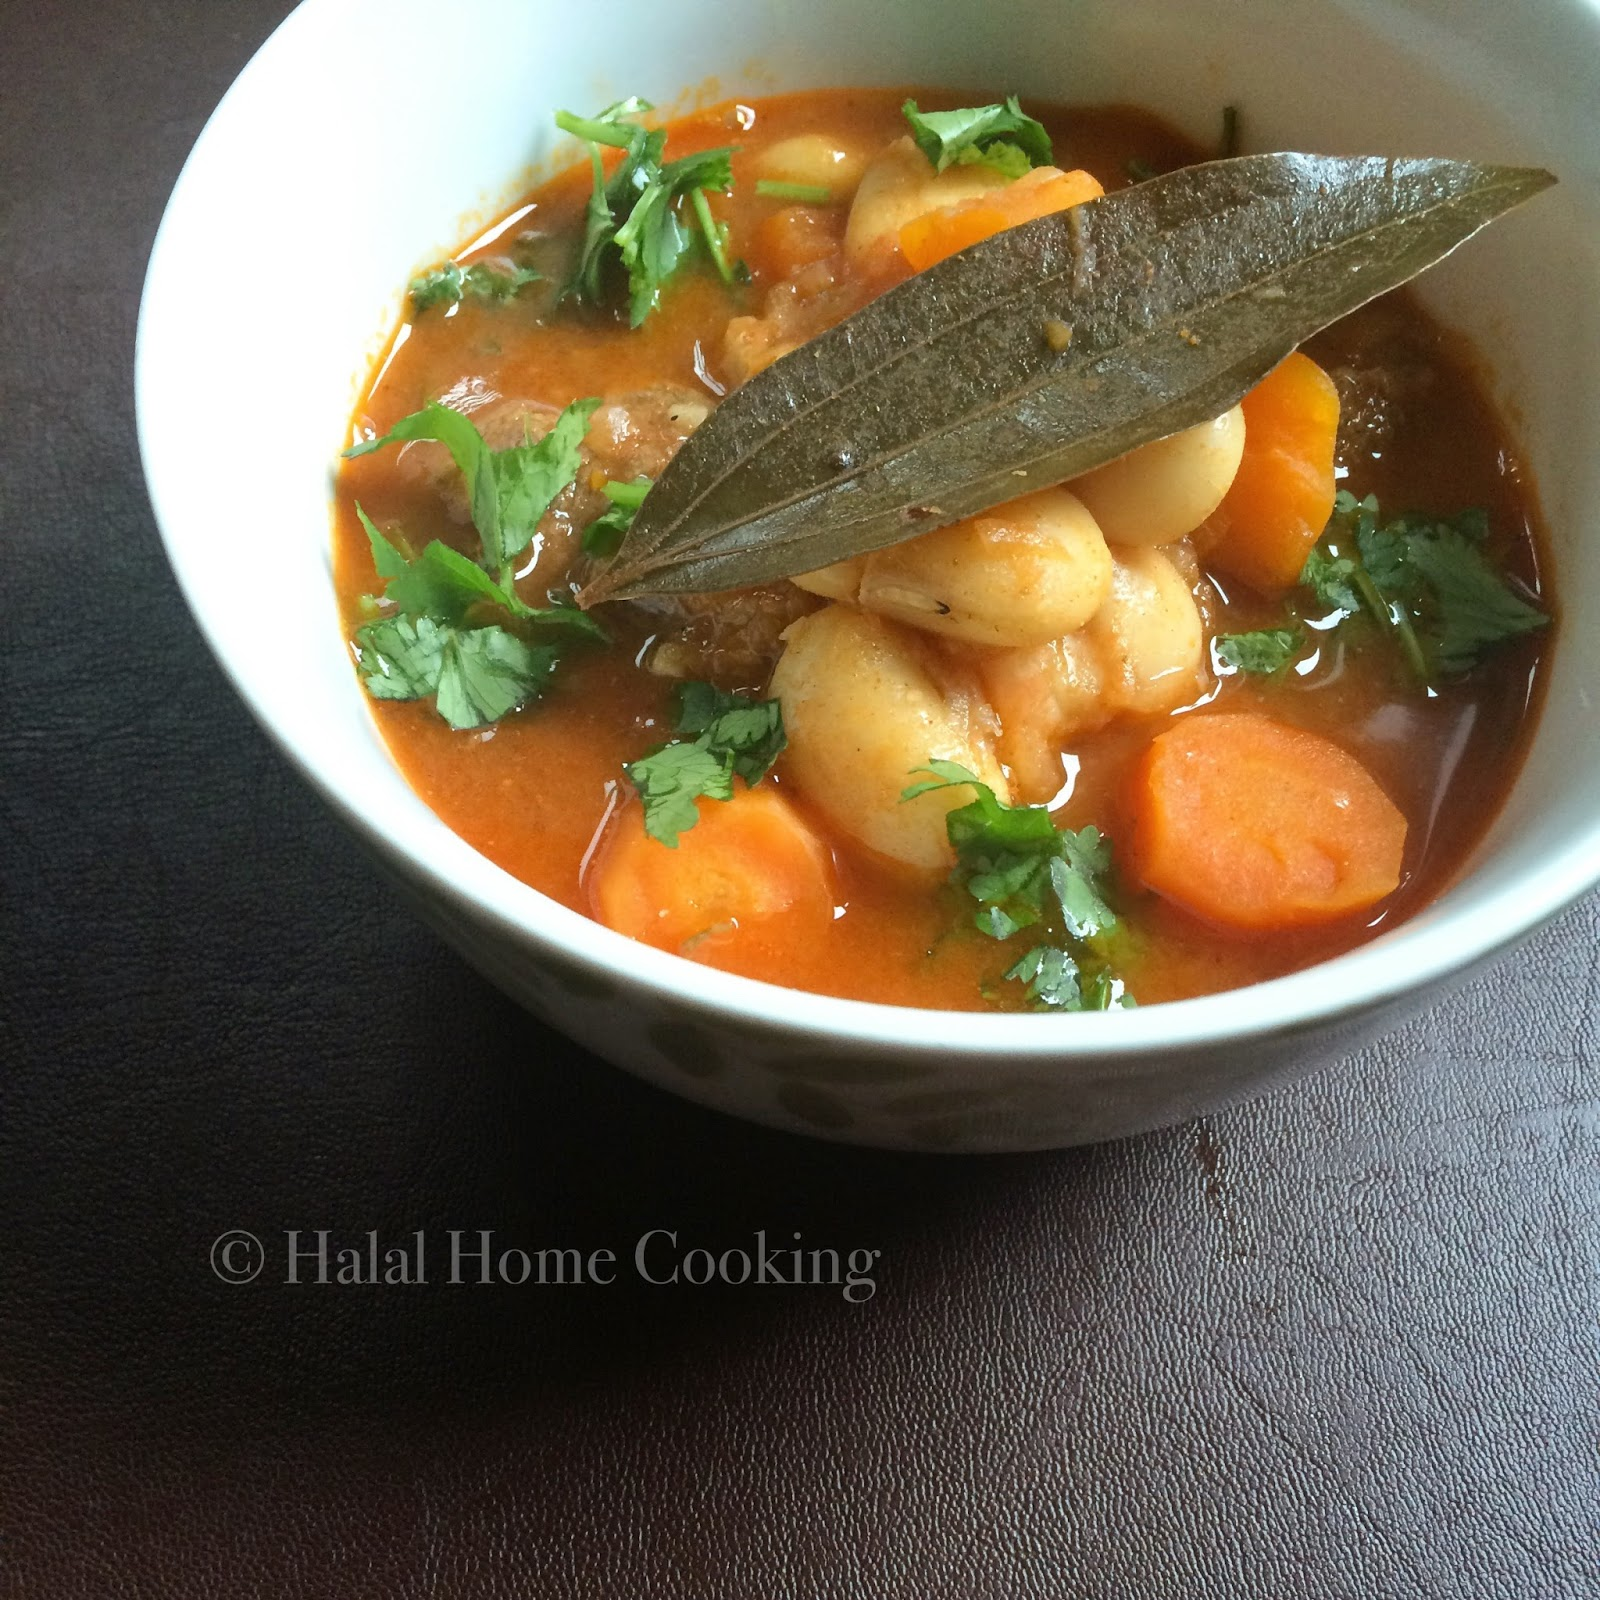 algerian loubia b'lham - white bean & lamb soup recipe